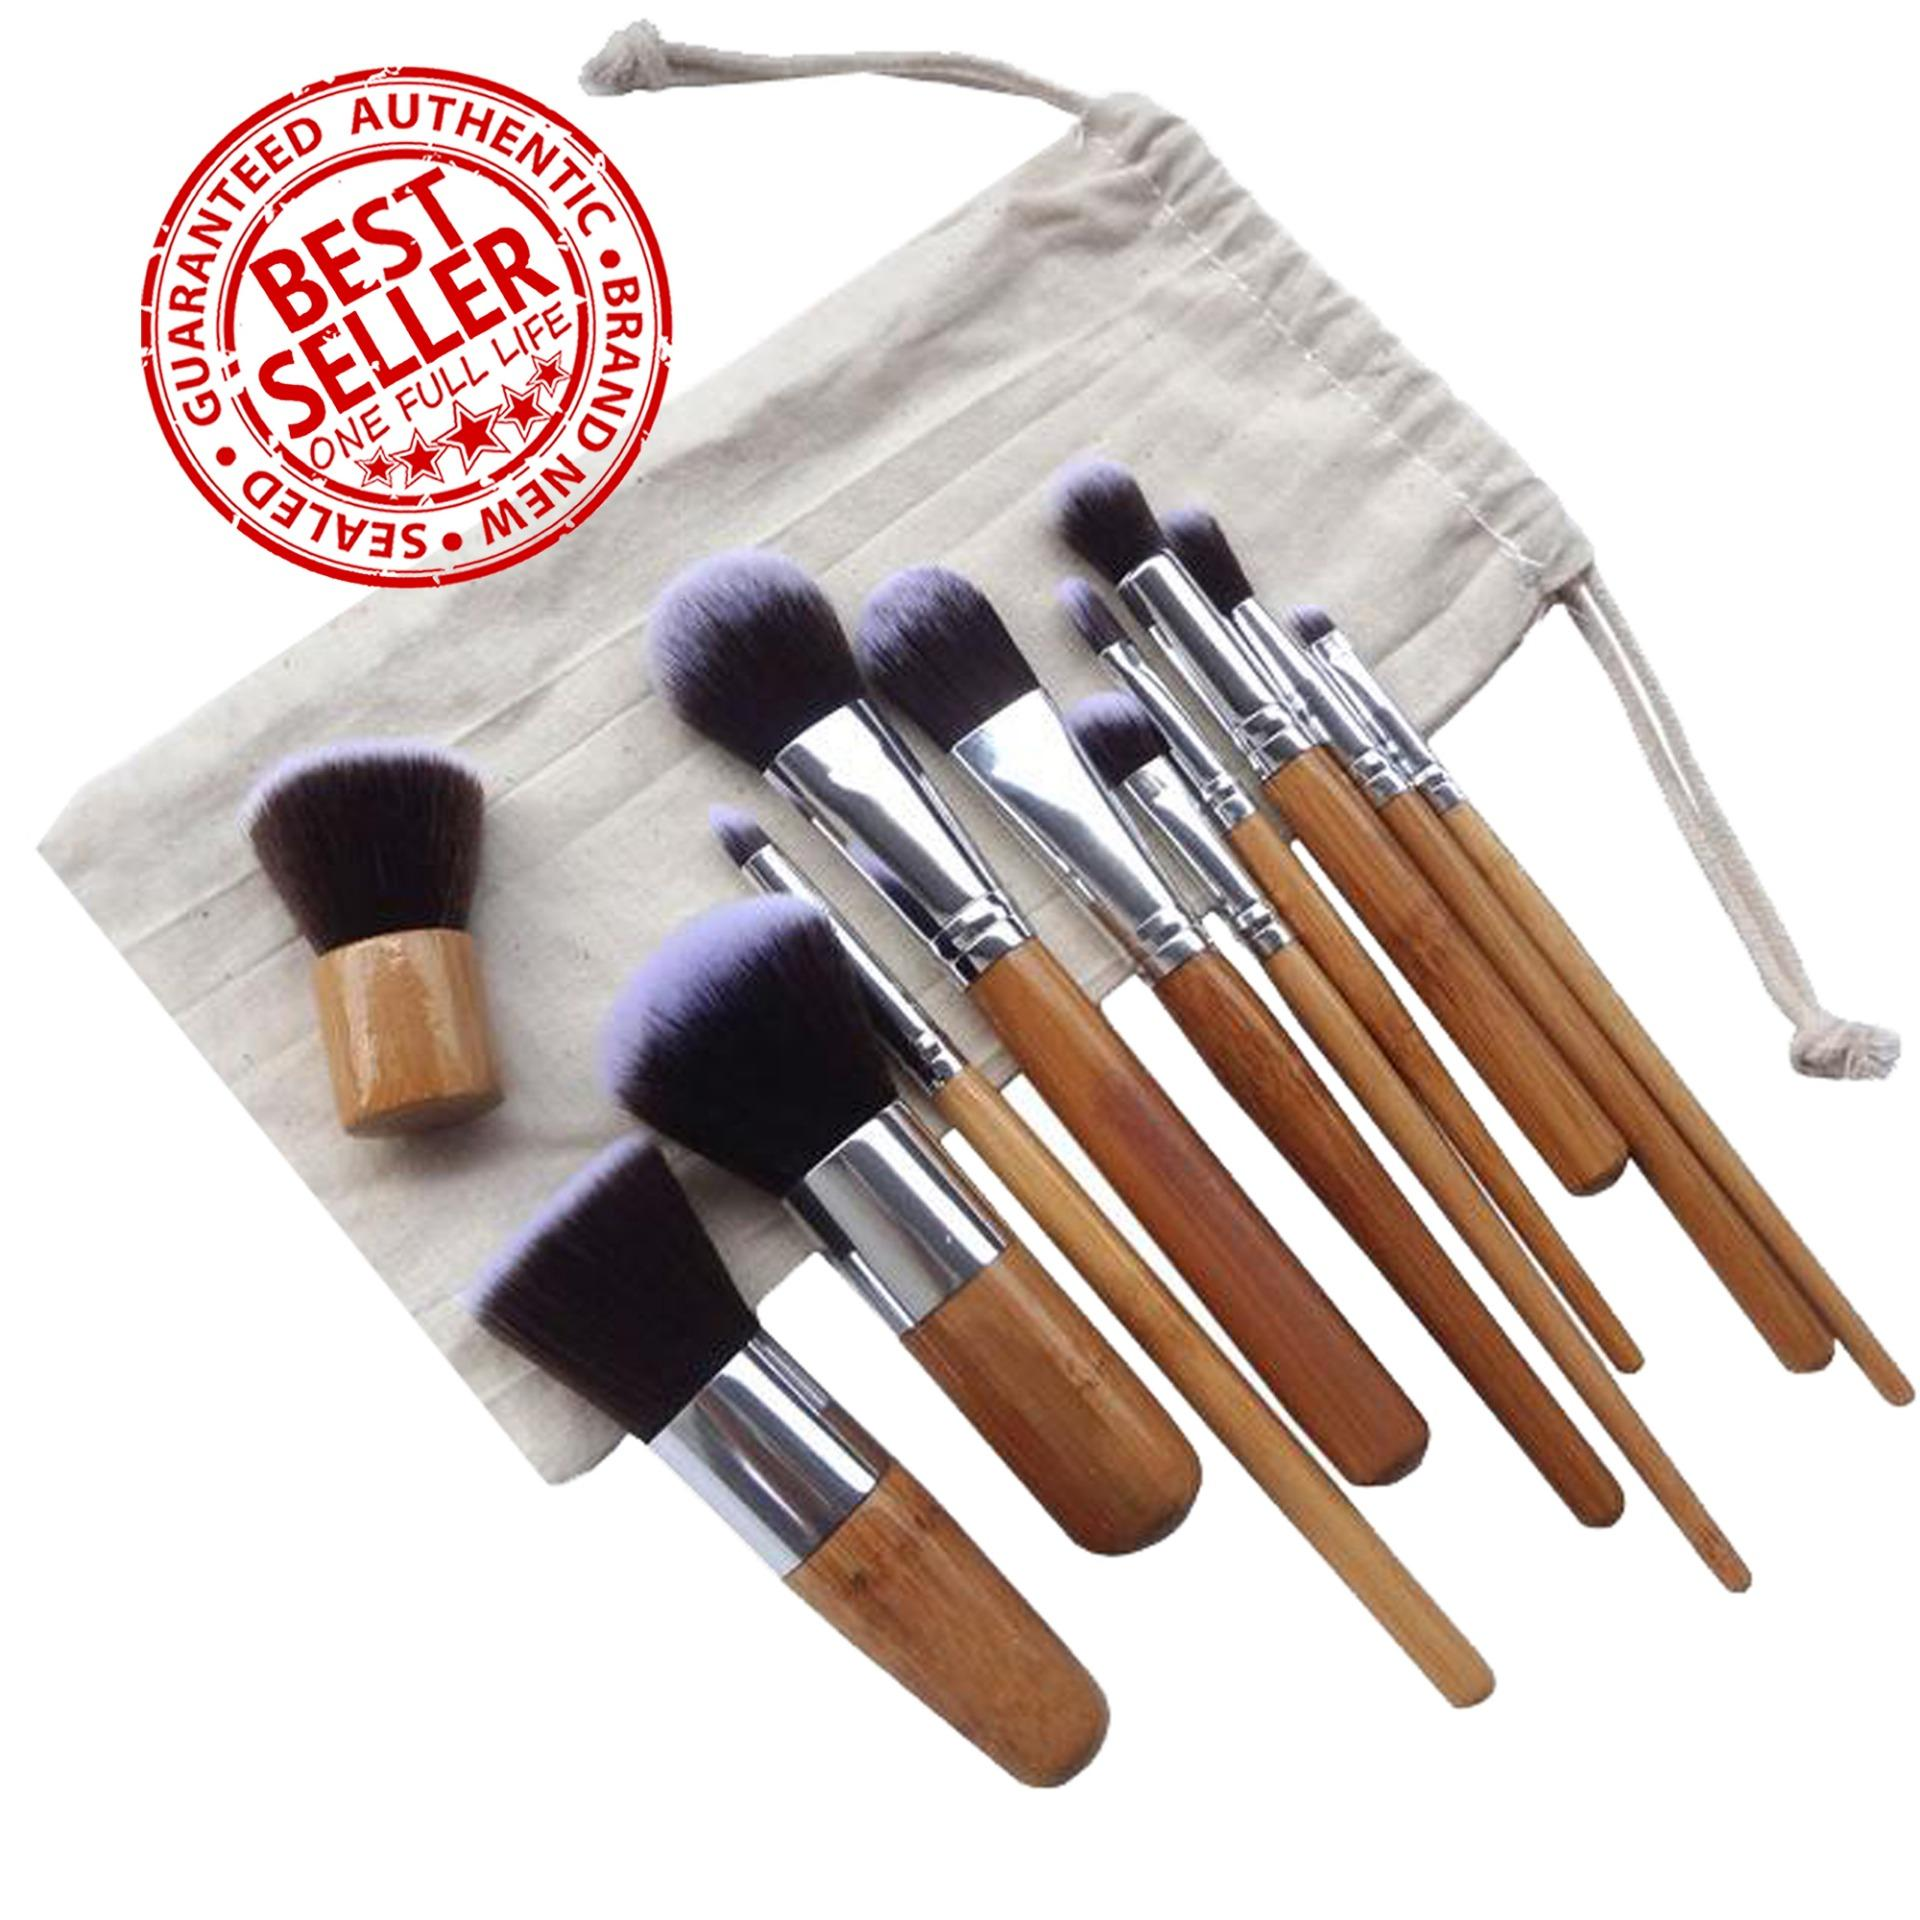 Professional Bamboo Make up Brush Set 11 Pieces with Pouch Philippines